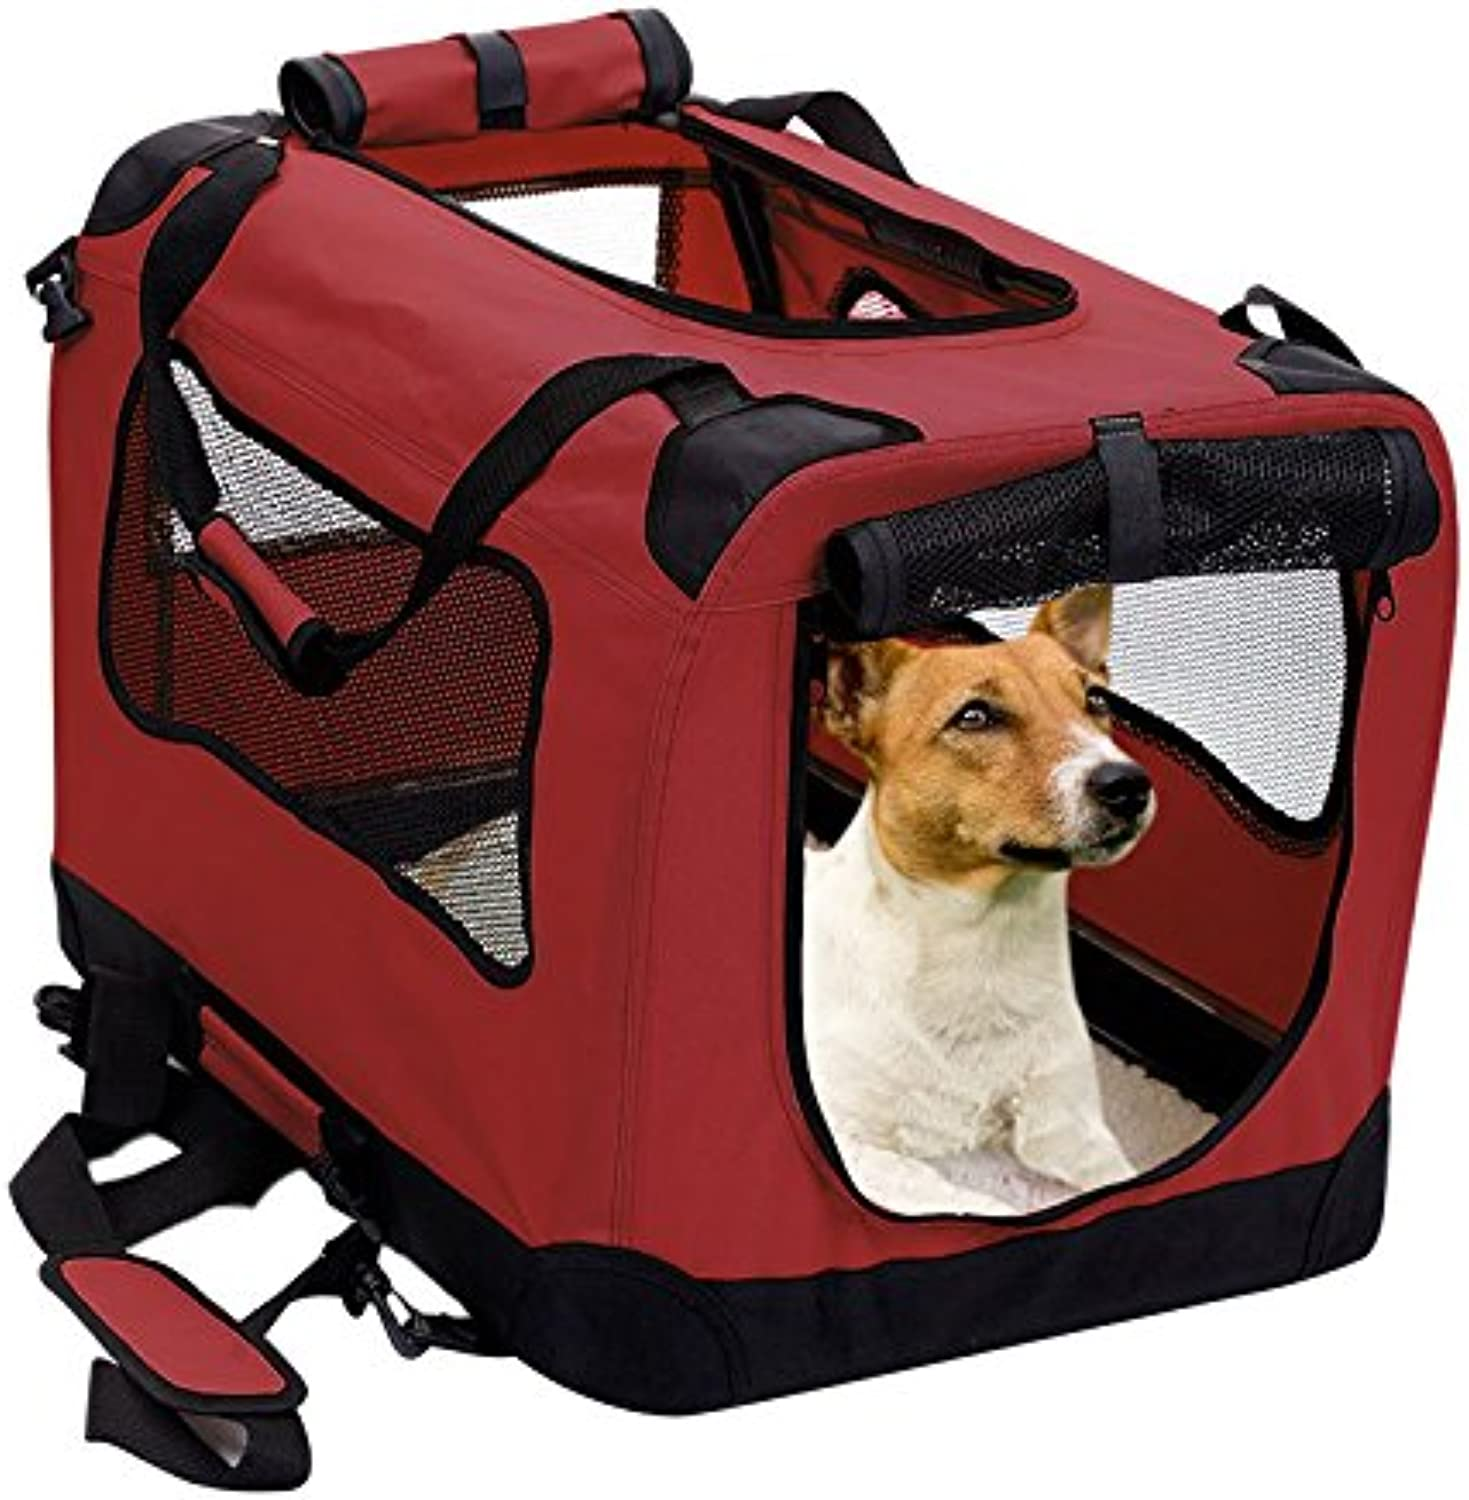 2PET Foldable Dog Crate  Soft, Easy to Fold & Carry Dog Crate for Indoor & Outdoor Use  Comfy Dog Home & Dog Travel Crate  Strong Steel Frame, Washable Fabric Cover, Frontal Zipper Medium Red